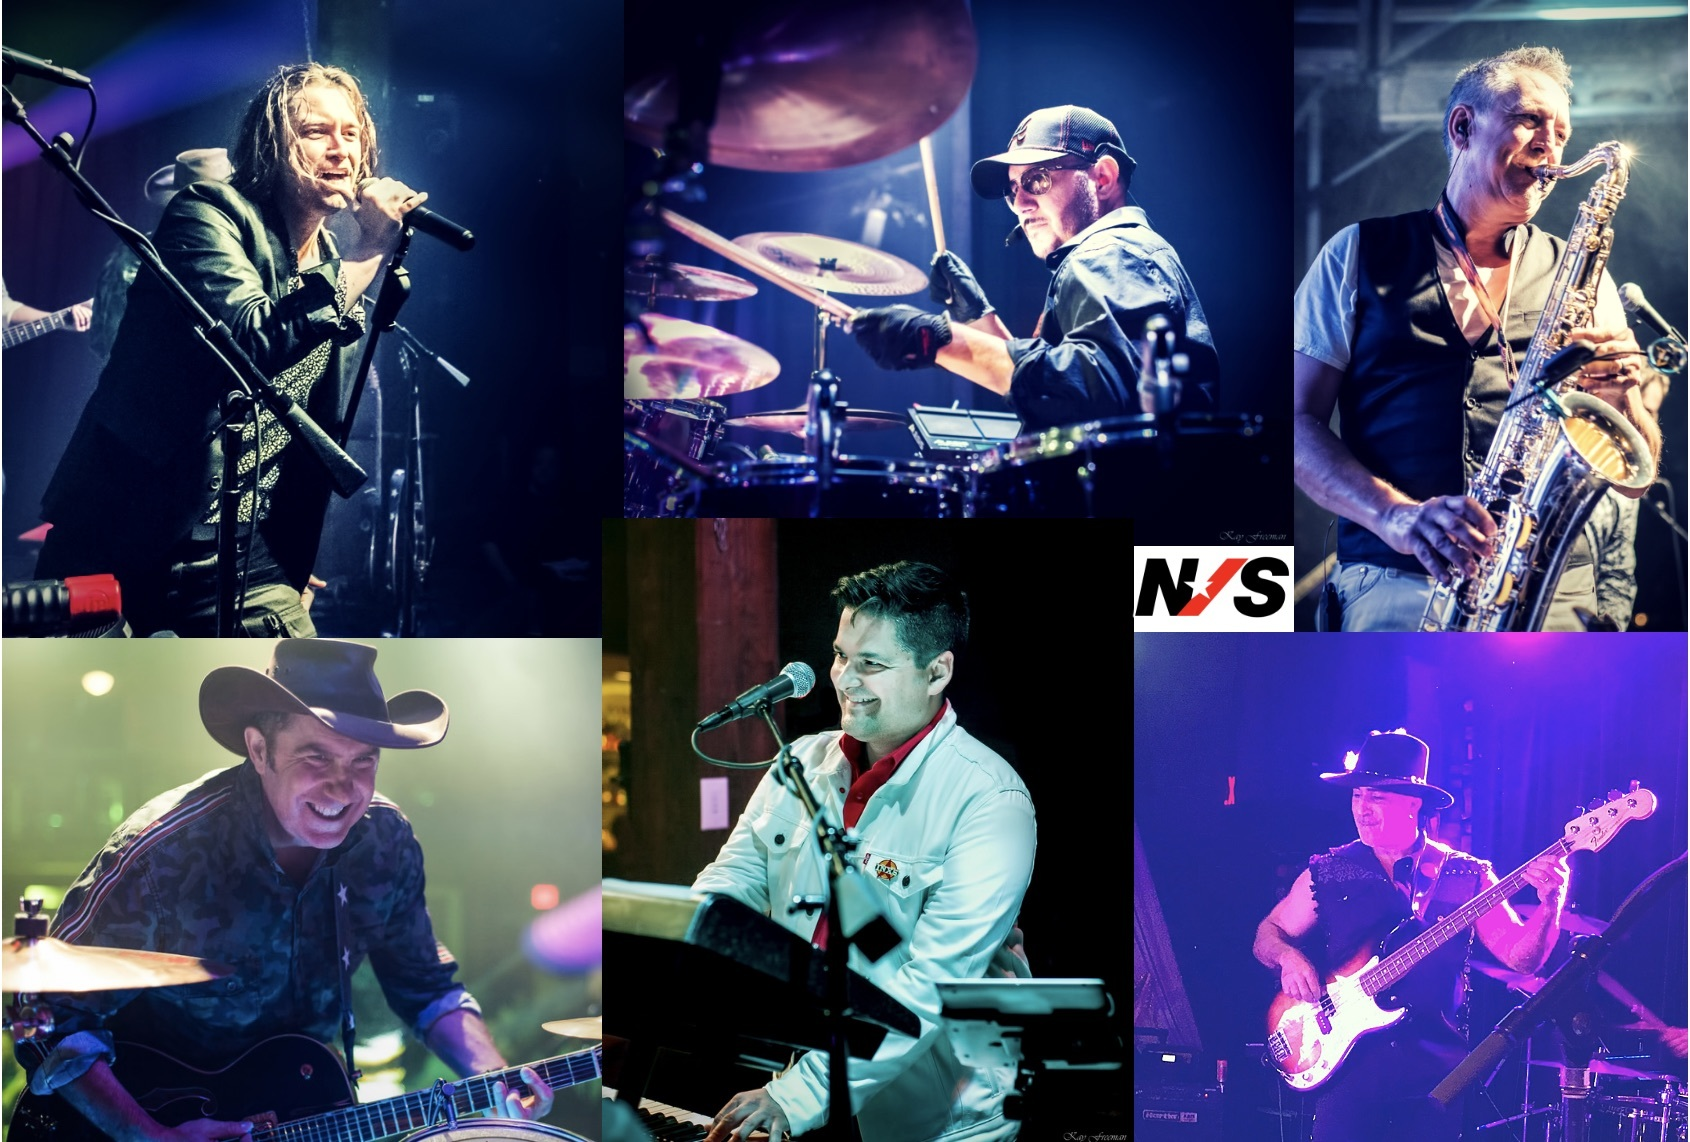 NEW SENSATION | THE AMERICAN INXS TRIBUTE BAND Store